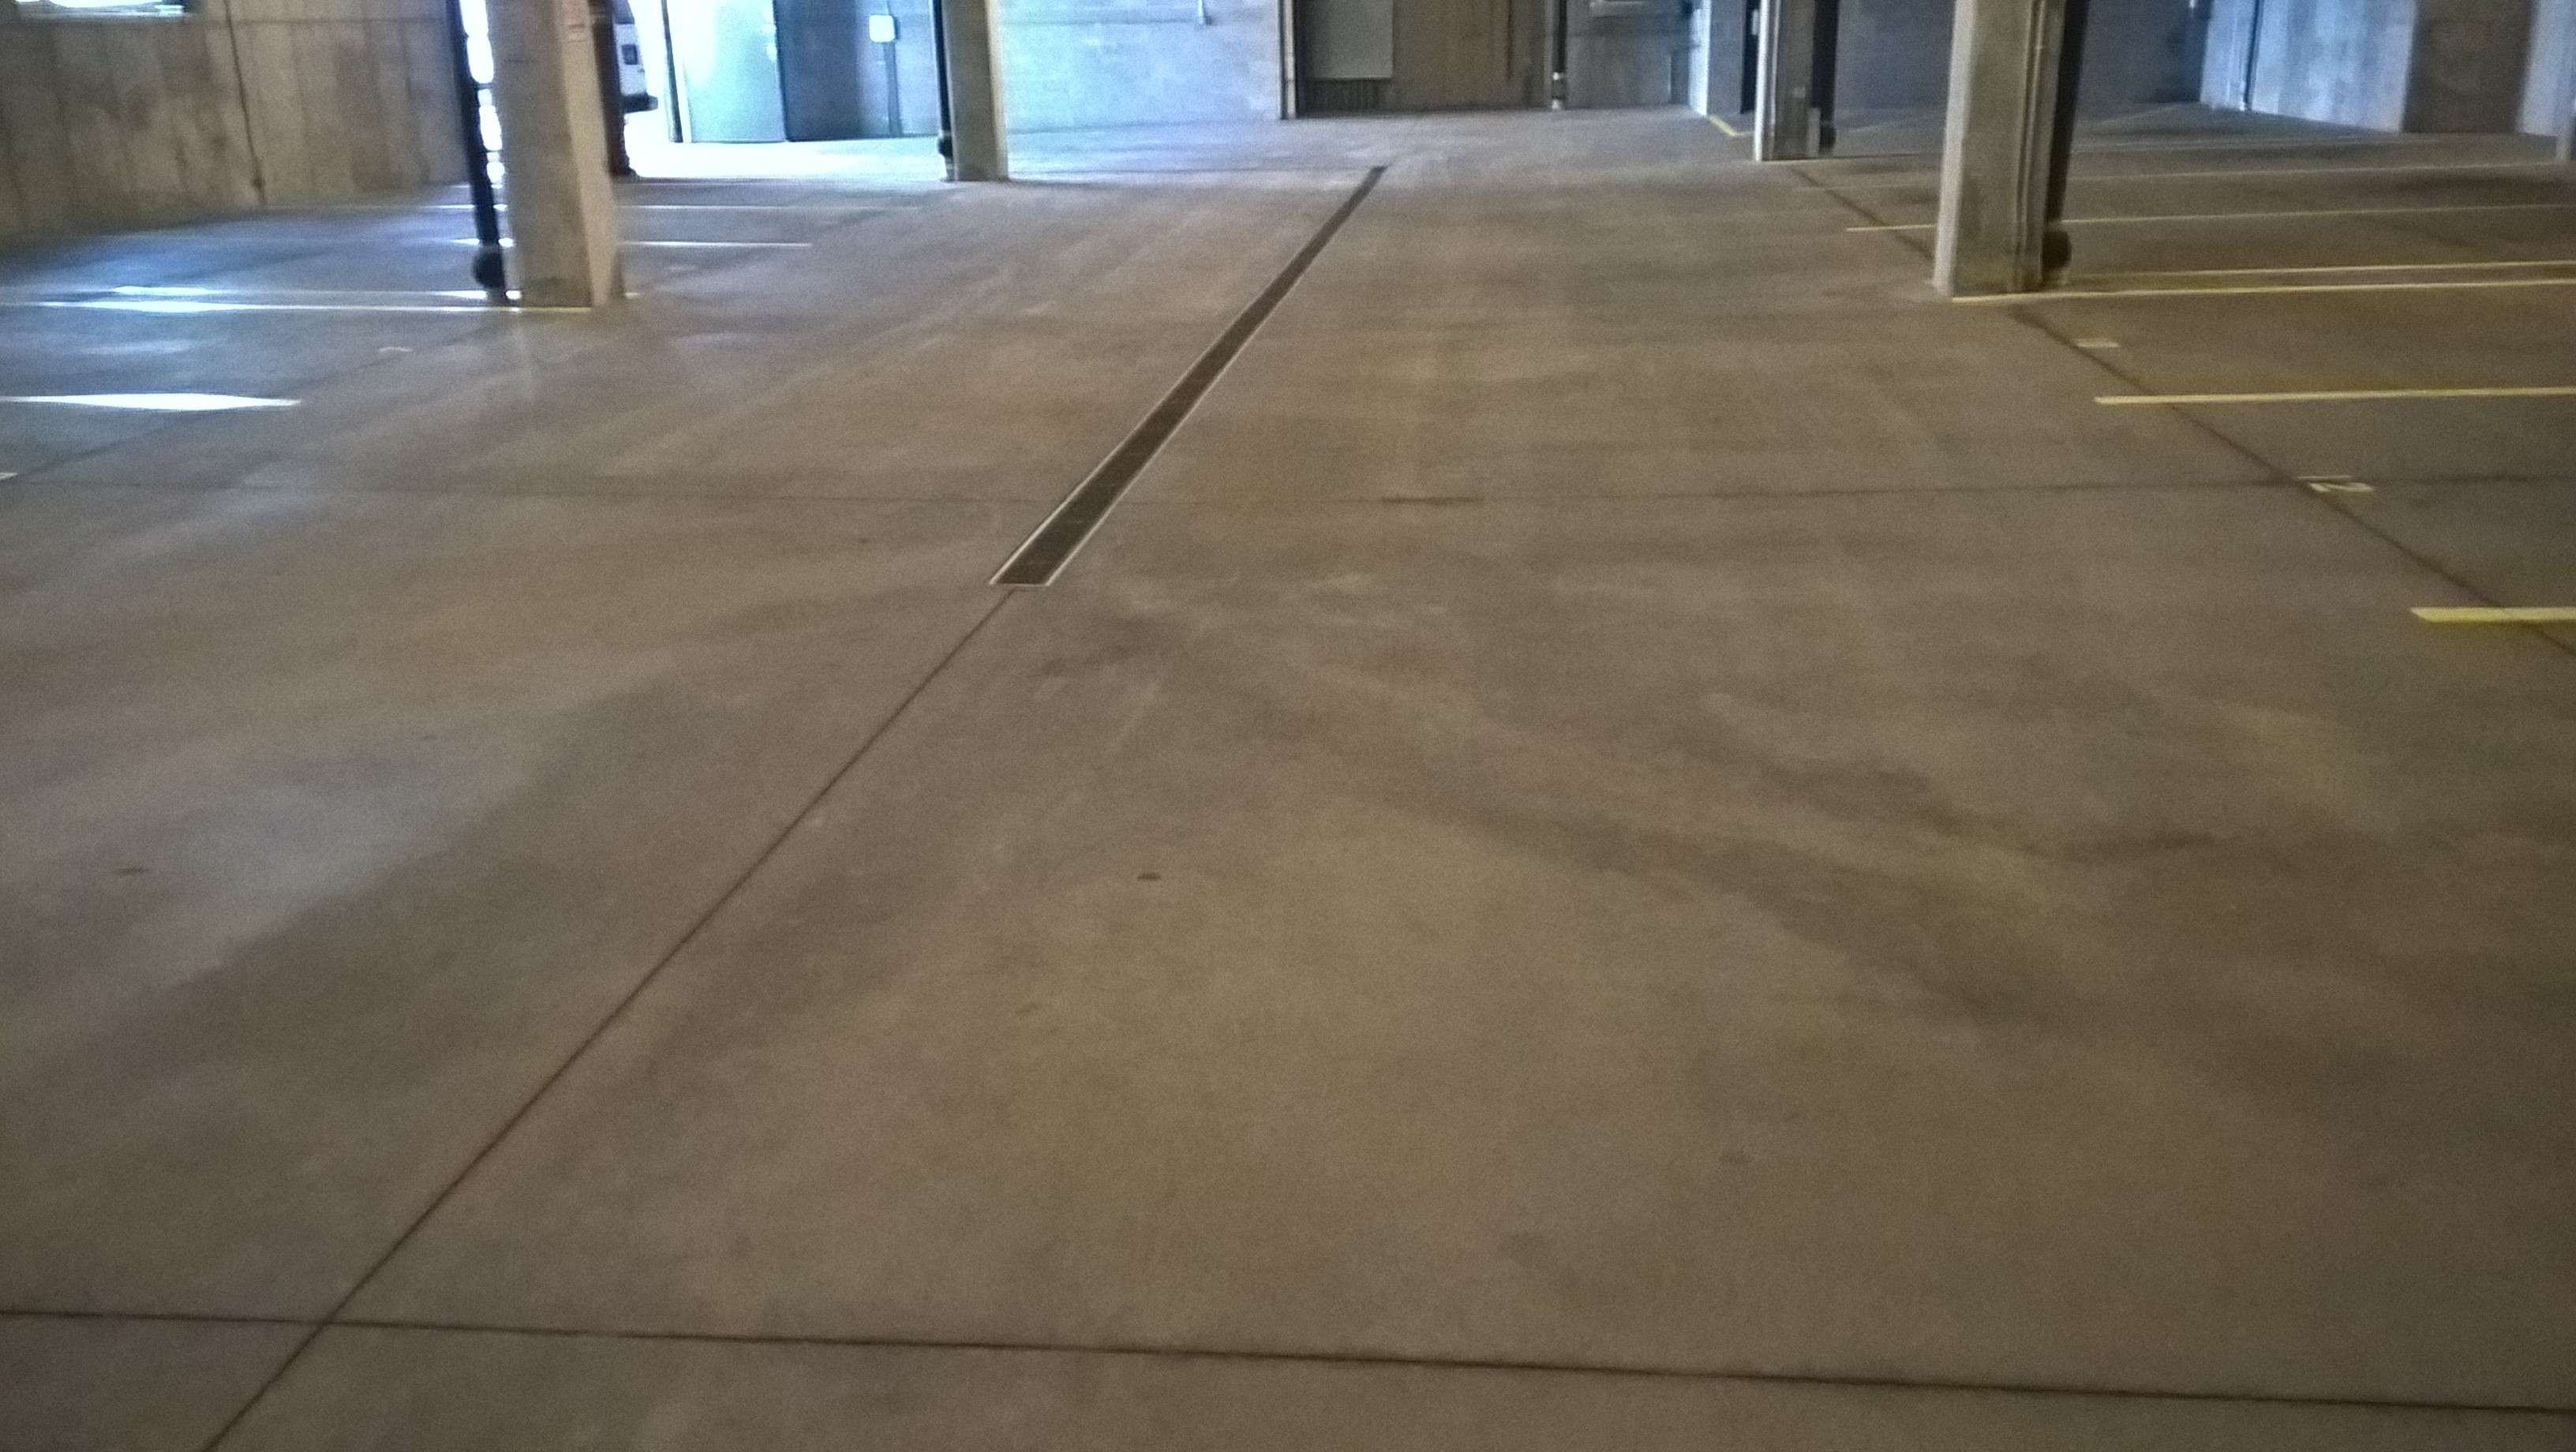 Parking garage concrete floor cleaning service in minneapolis for Scrubbing concrete floors